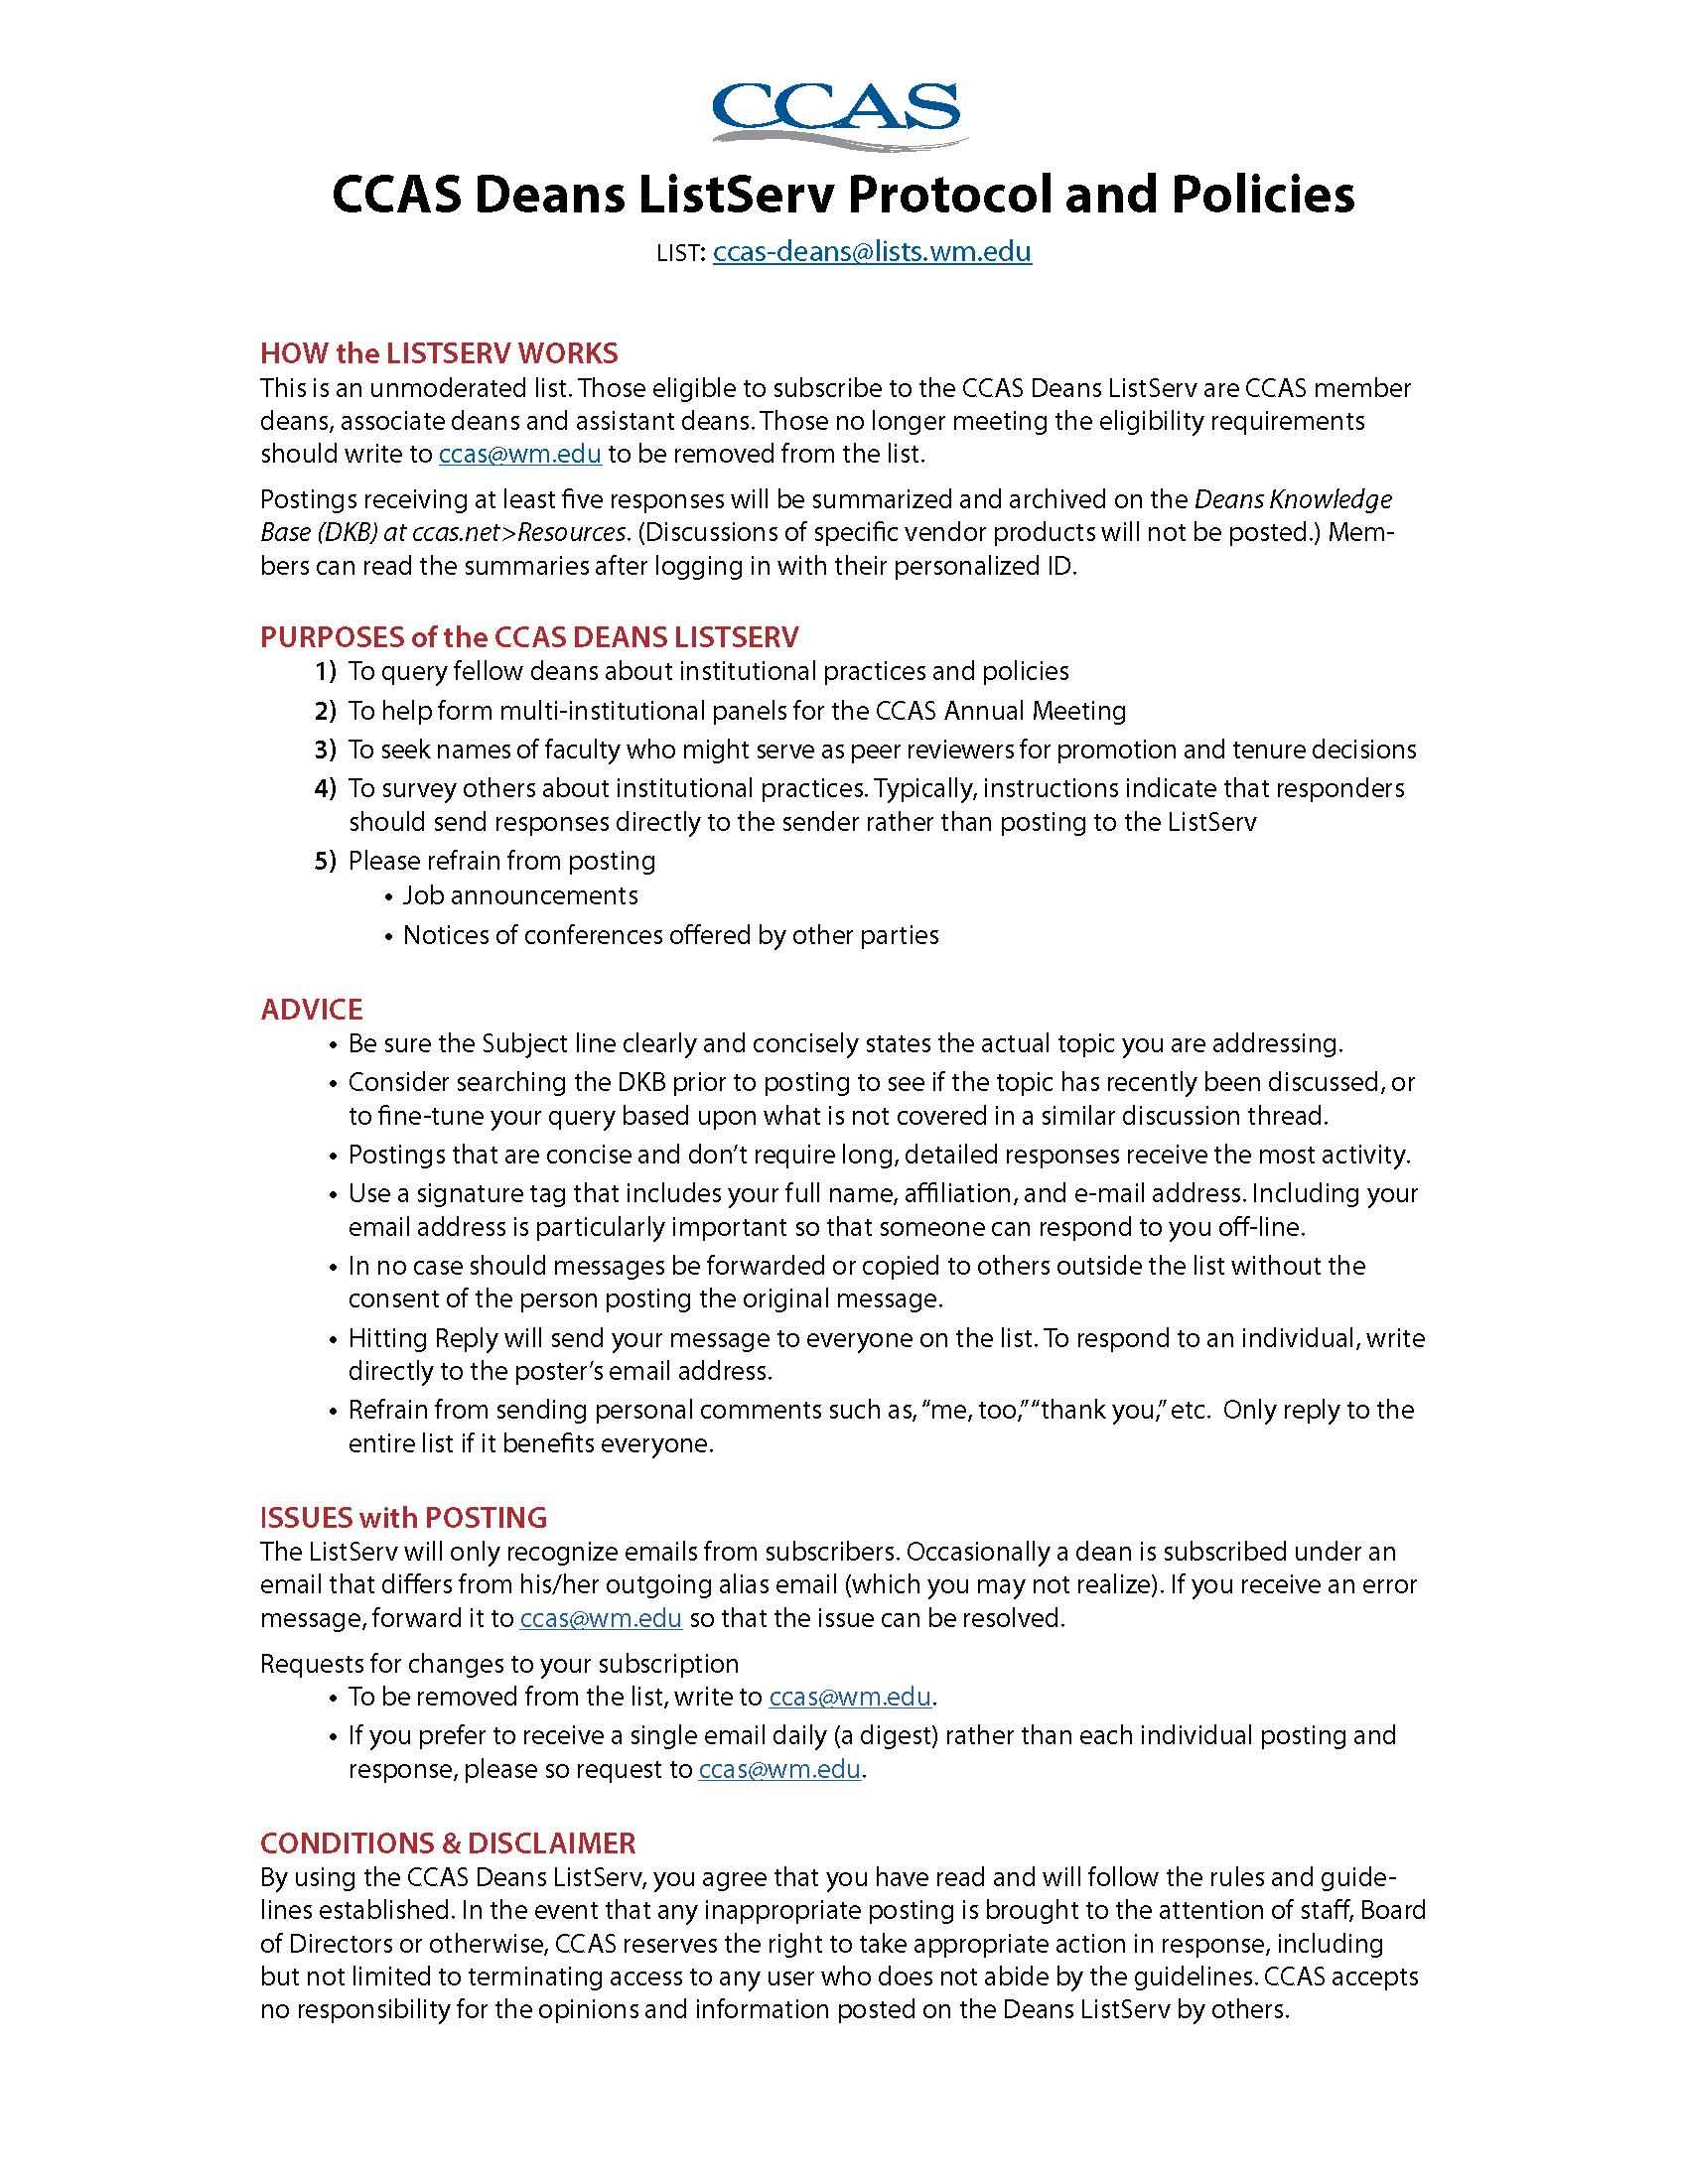 CCAS Deans ListServ Protocol & Policies - Council of Colleges of ...